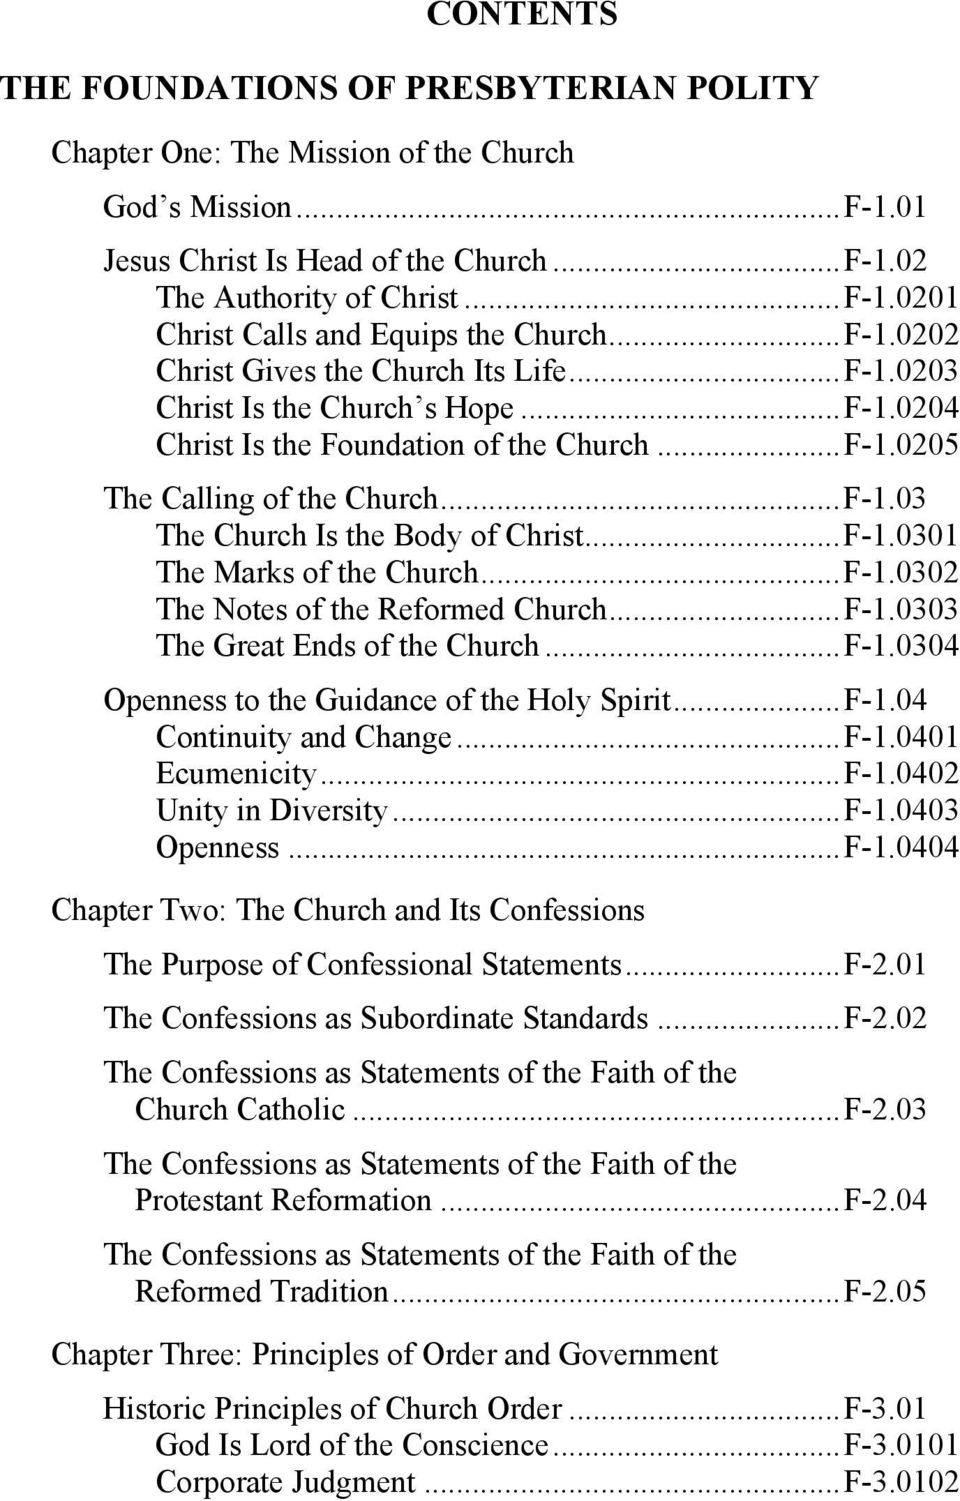 .. F-1.0301 The Marks of the Church... F-1.0302 The Notes of the Reformed Church... F-1.0303 The Great Ends of the Church... F-1.0304 Openness to the Guidance of the Holy Spirit... F-1.04 Continuity and Change.